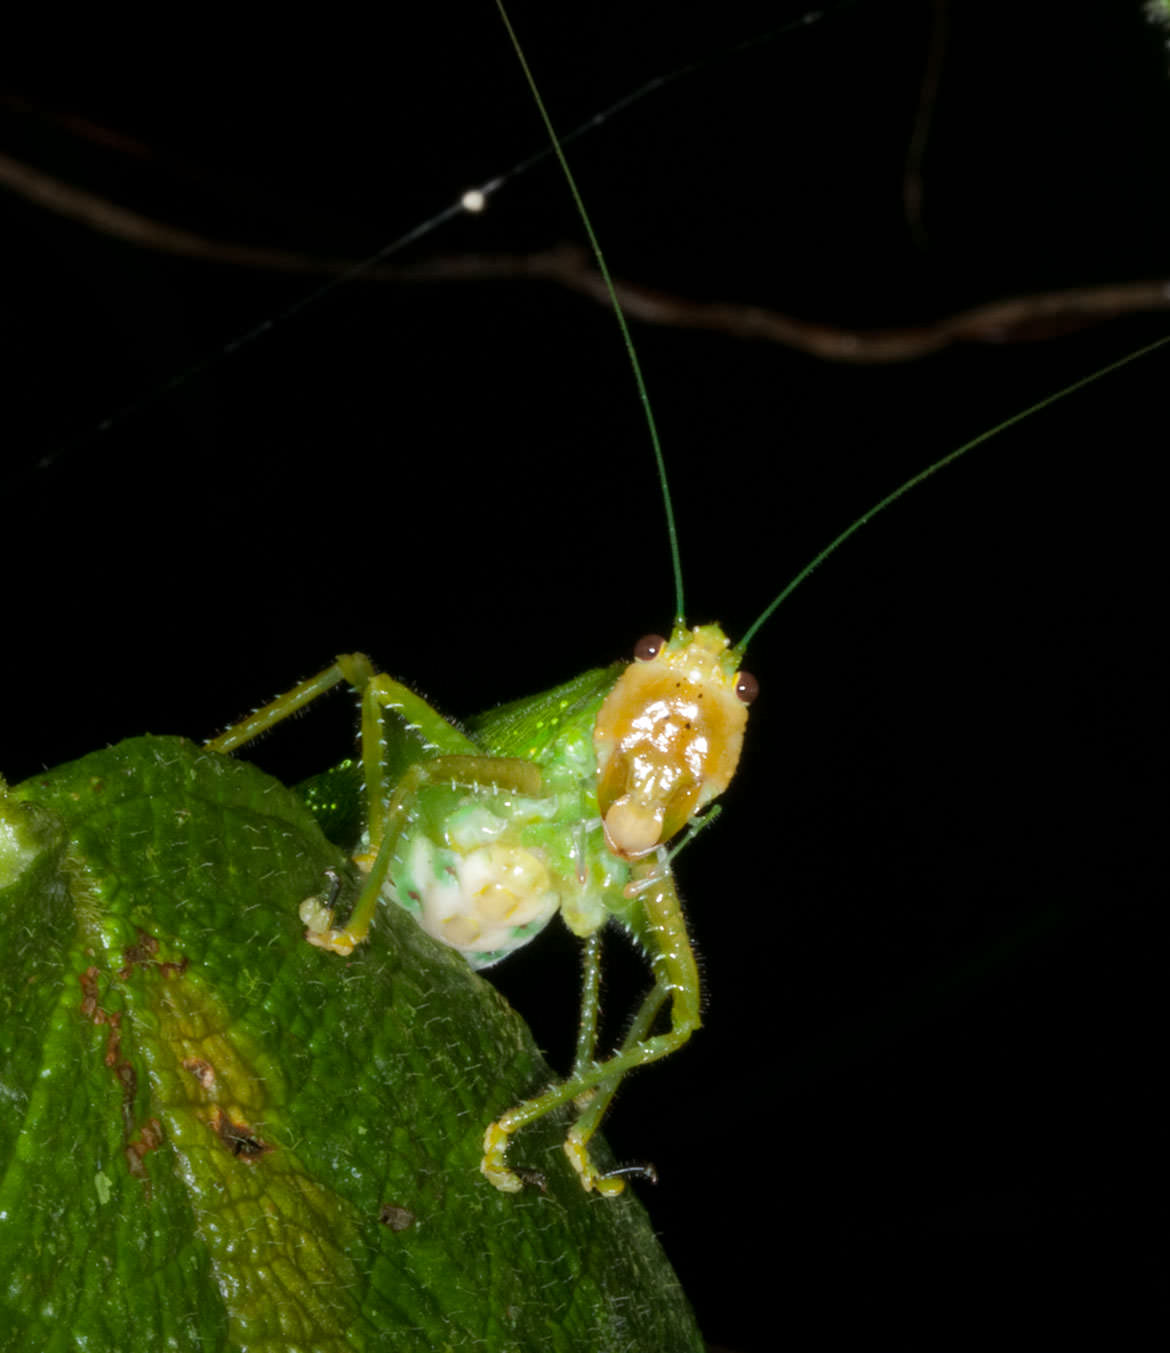 Katydid devours in the night